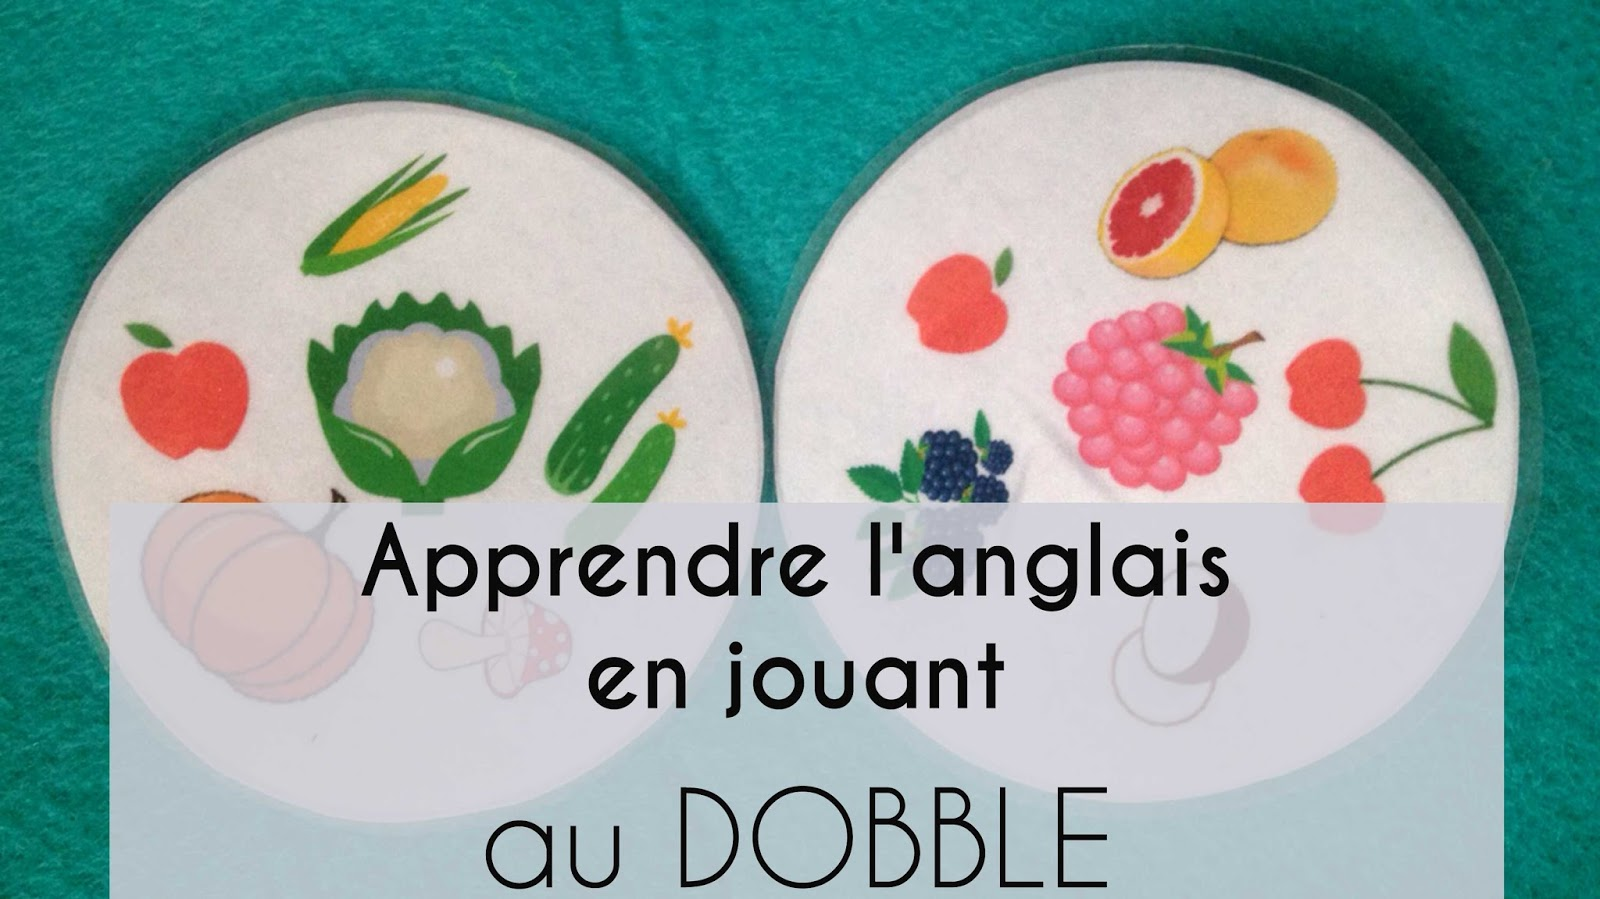 dobble-fruits and vegetables